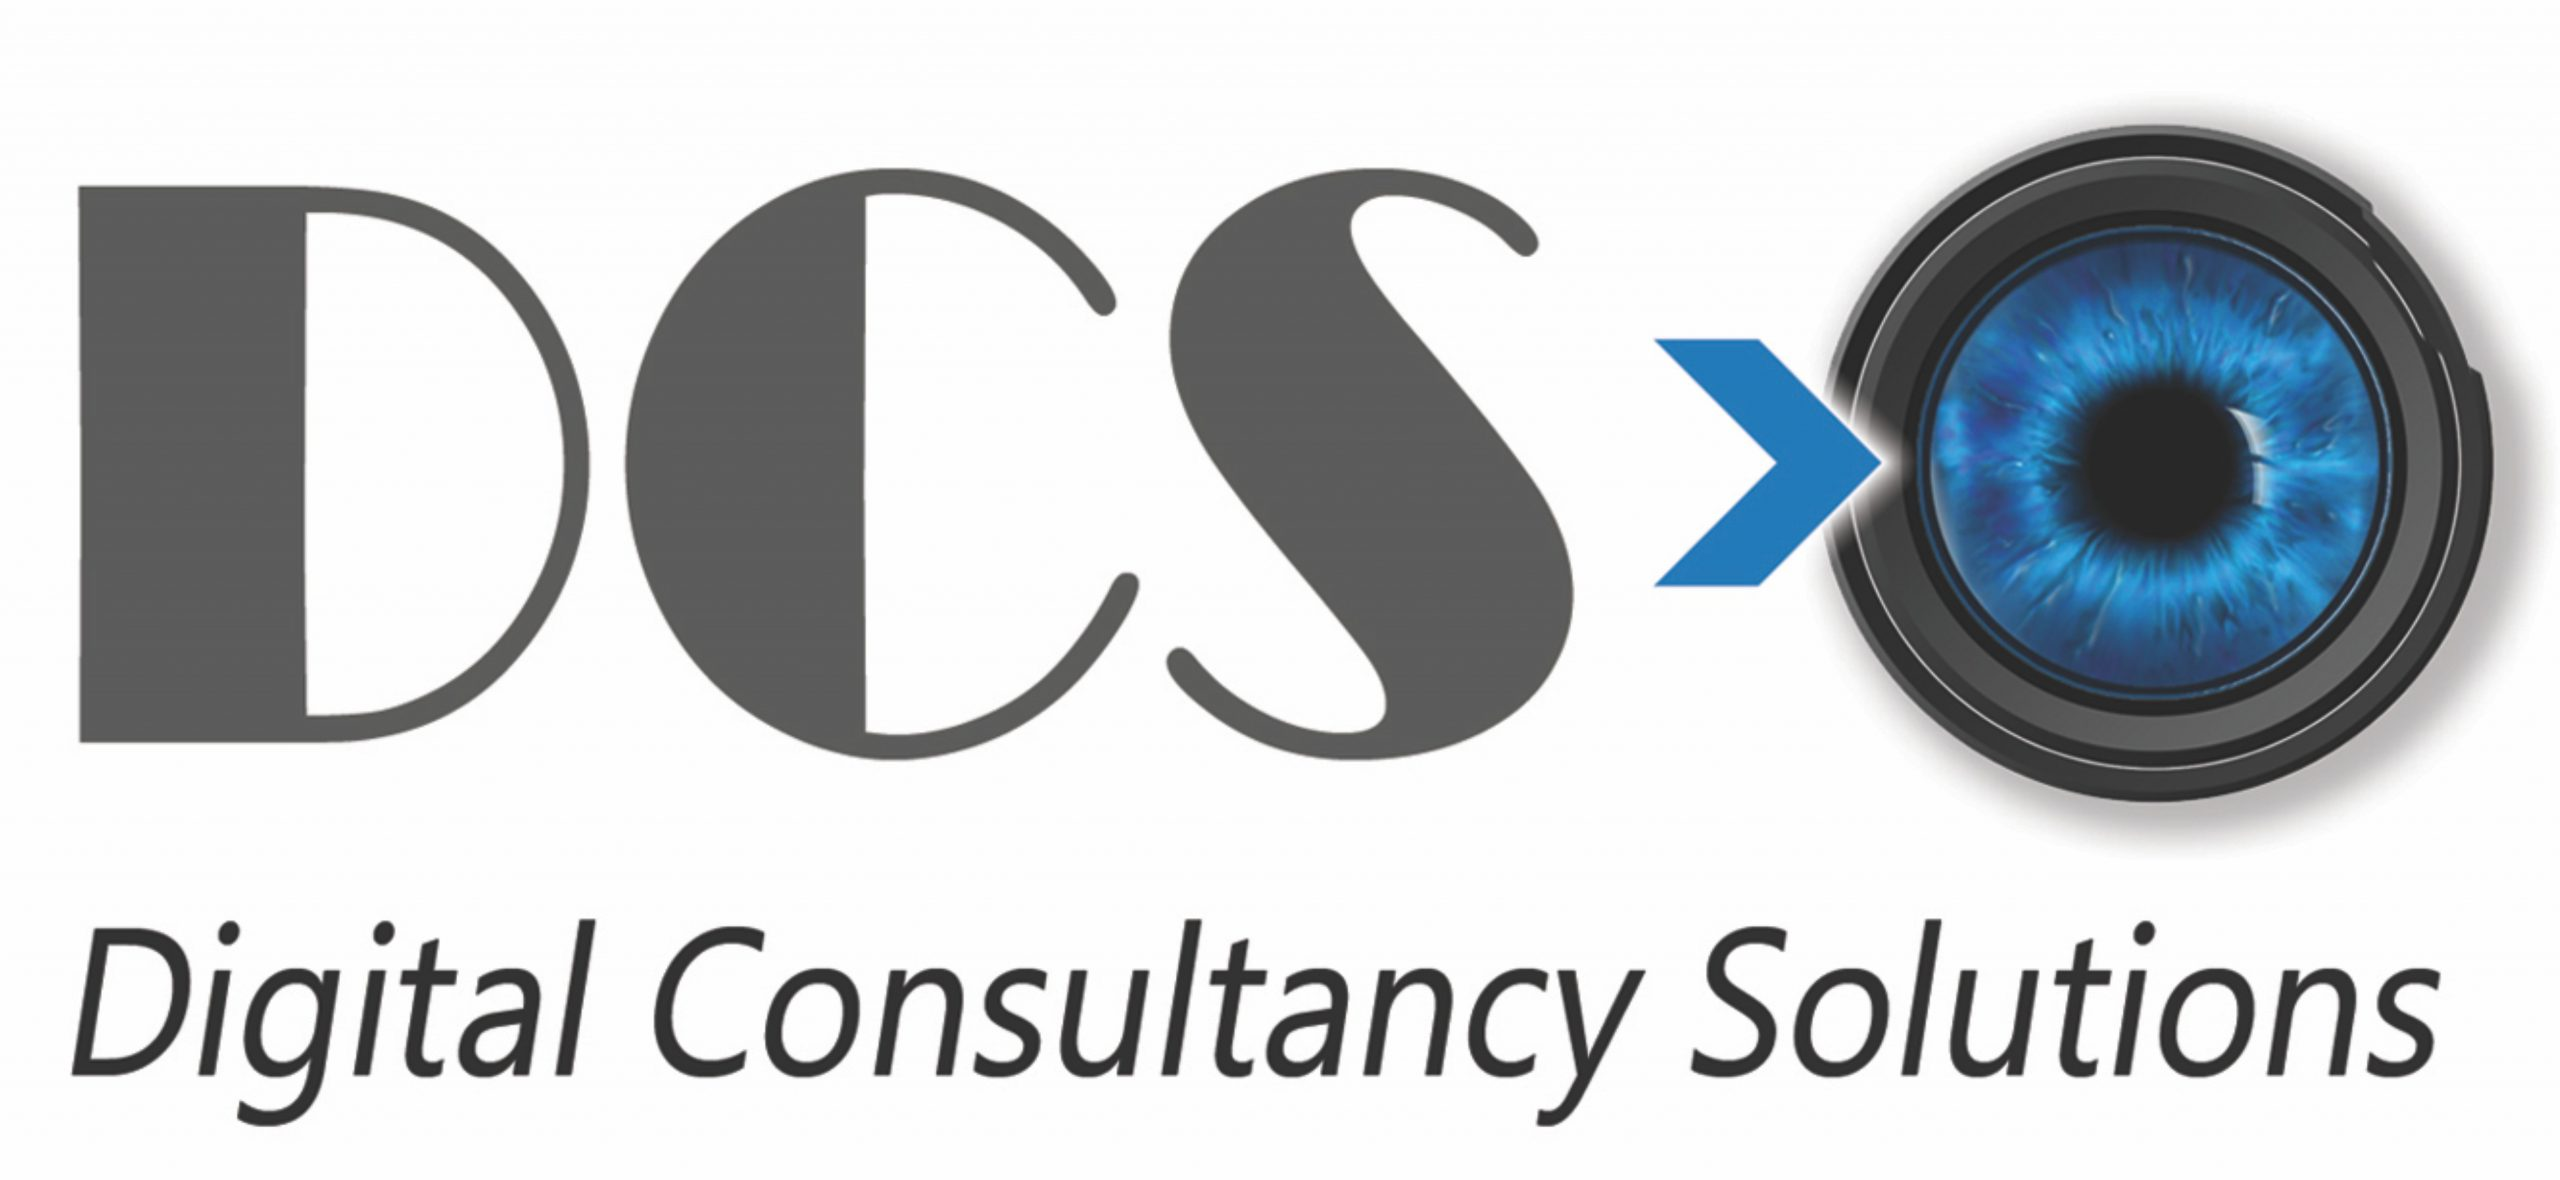 Digital Consultancy Solutions